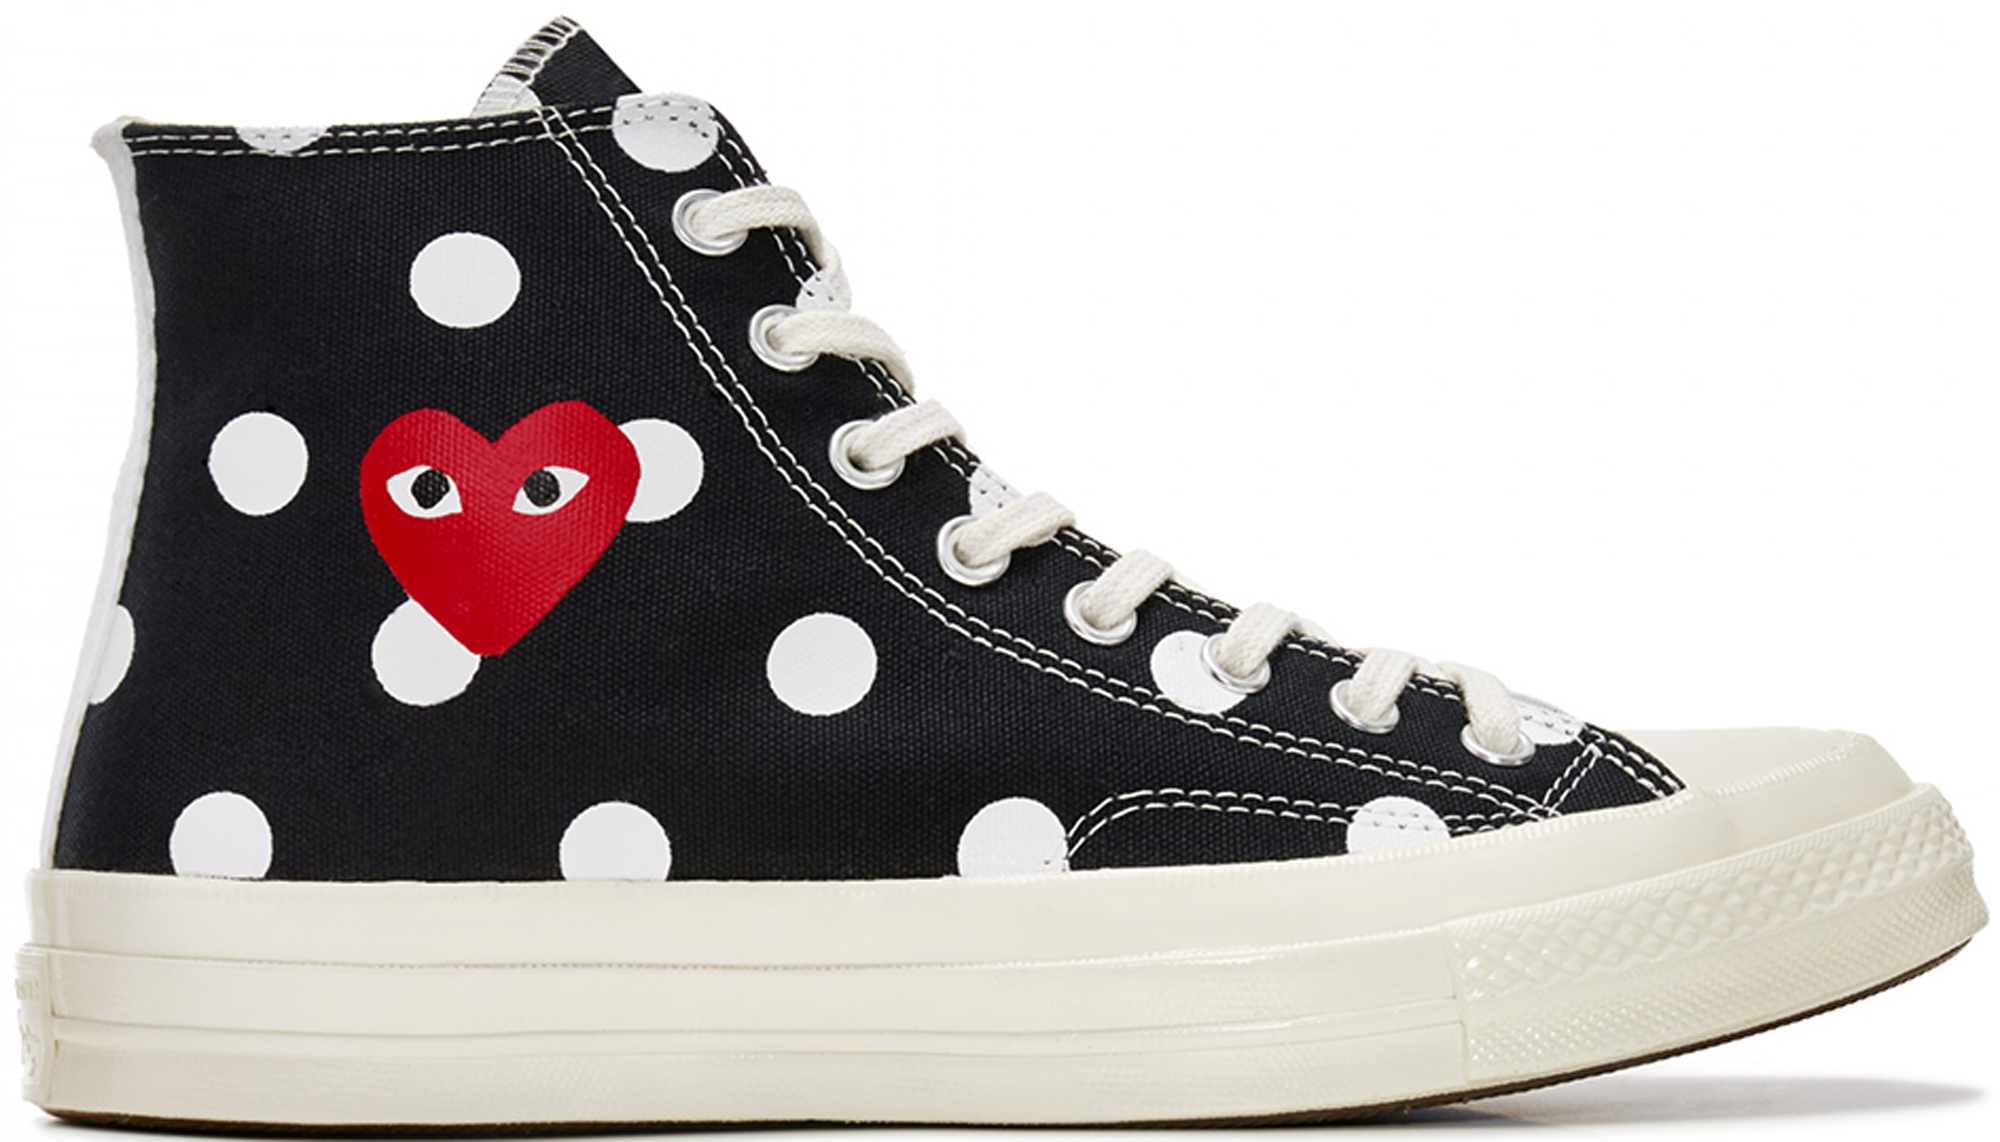 Converse Chuck Taylor All-Star 70s Hi Comme des Garcons Polka Dot Black